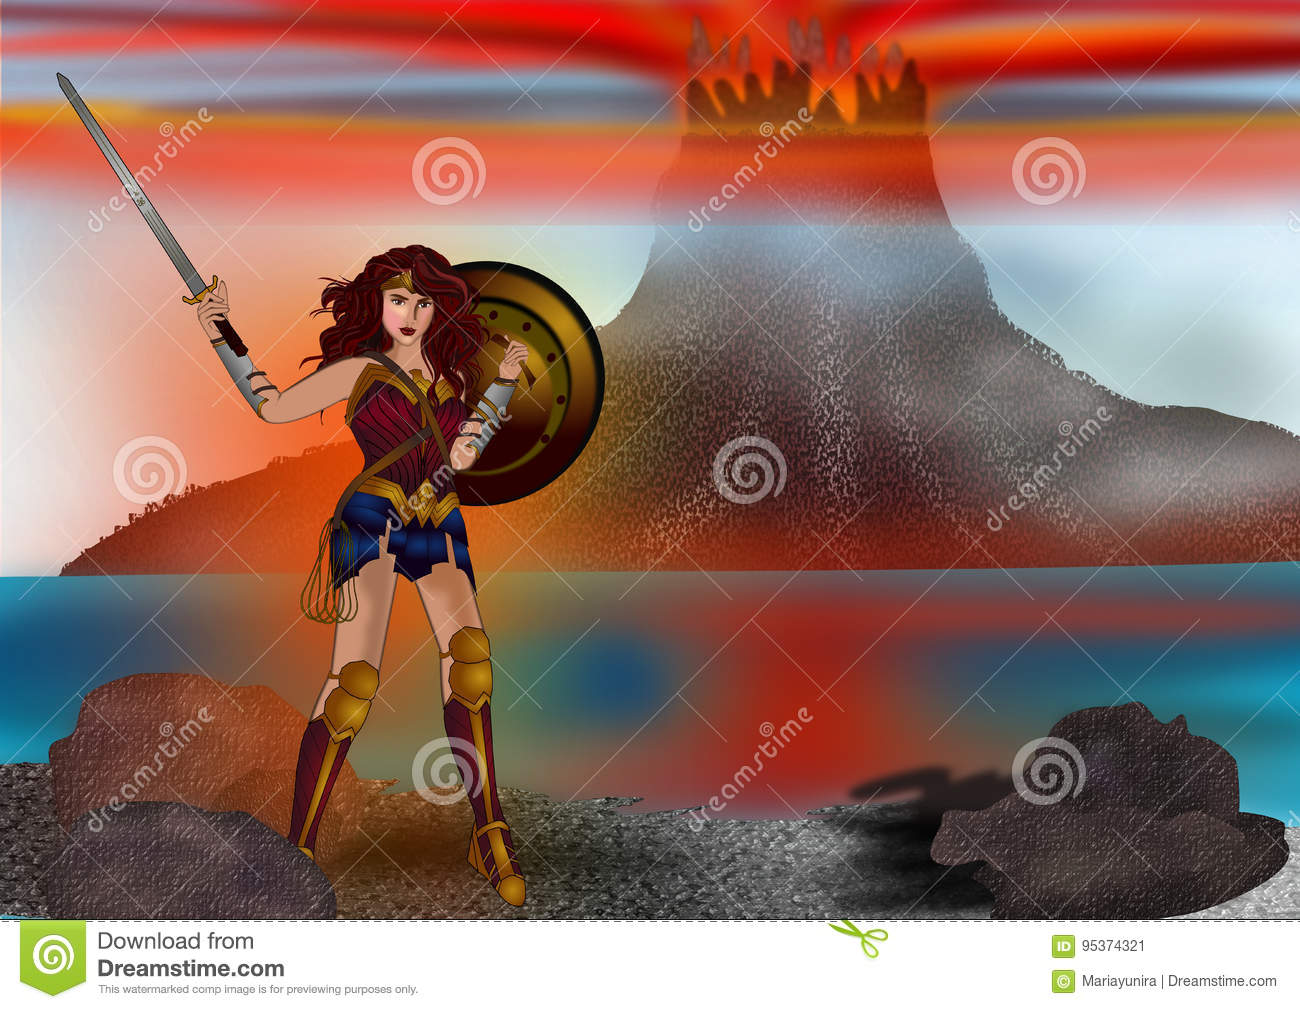 Wonder woman and the mountain background